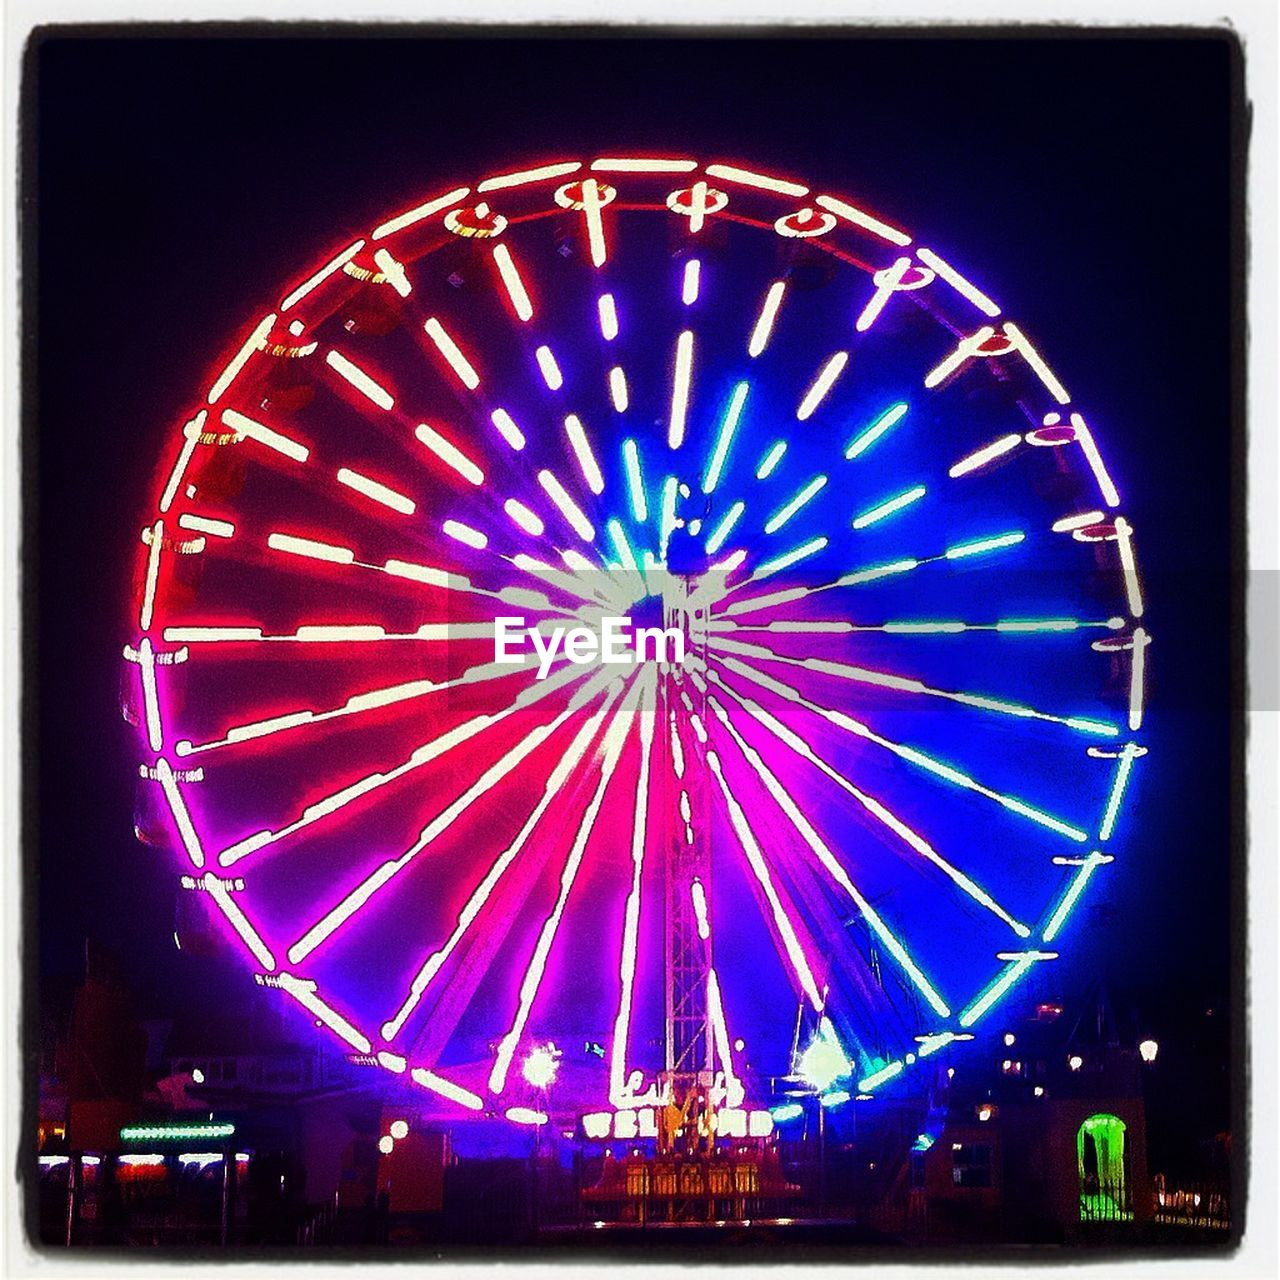 night, arts culture and entertainment, illuminated, amusement park, low angle view, ferris wheel, no people, outdoors, multi colored, amusement park ride, sky